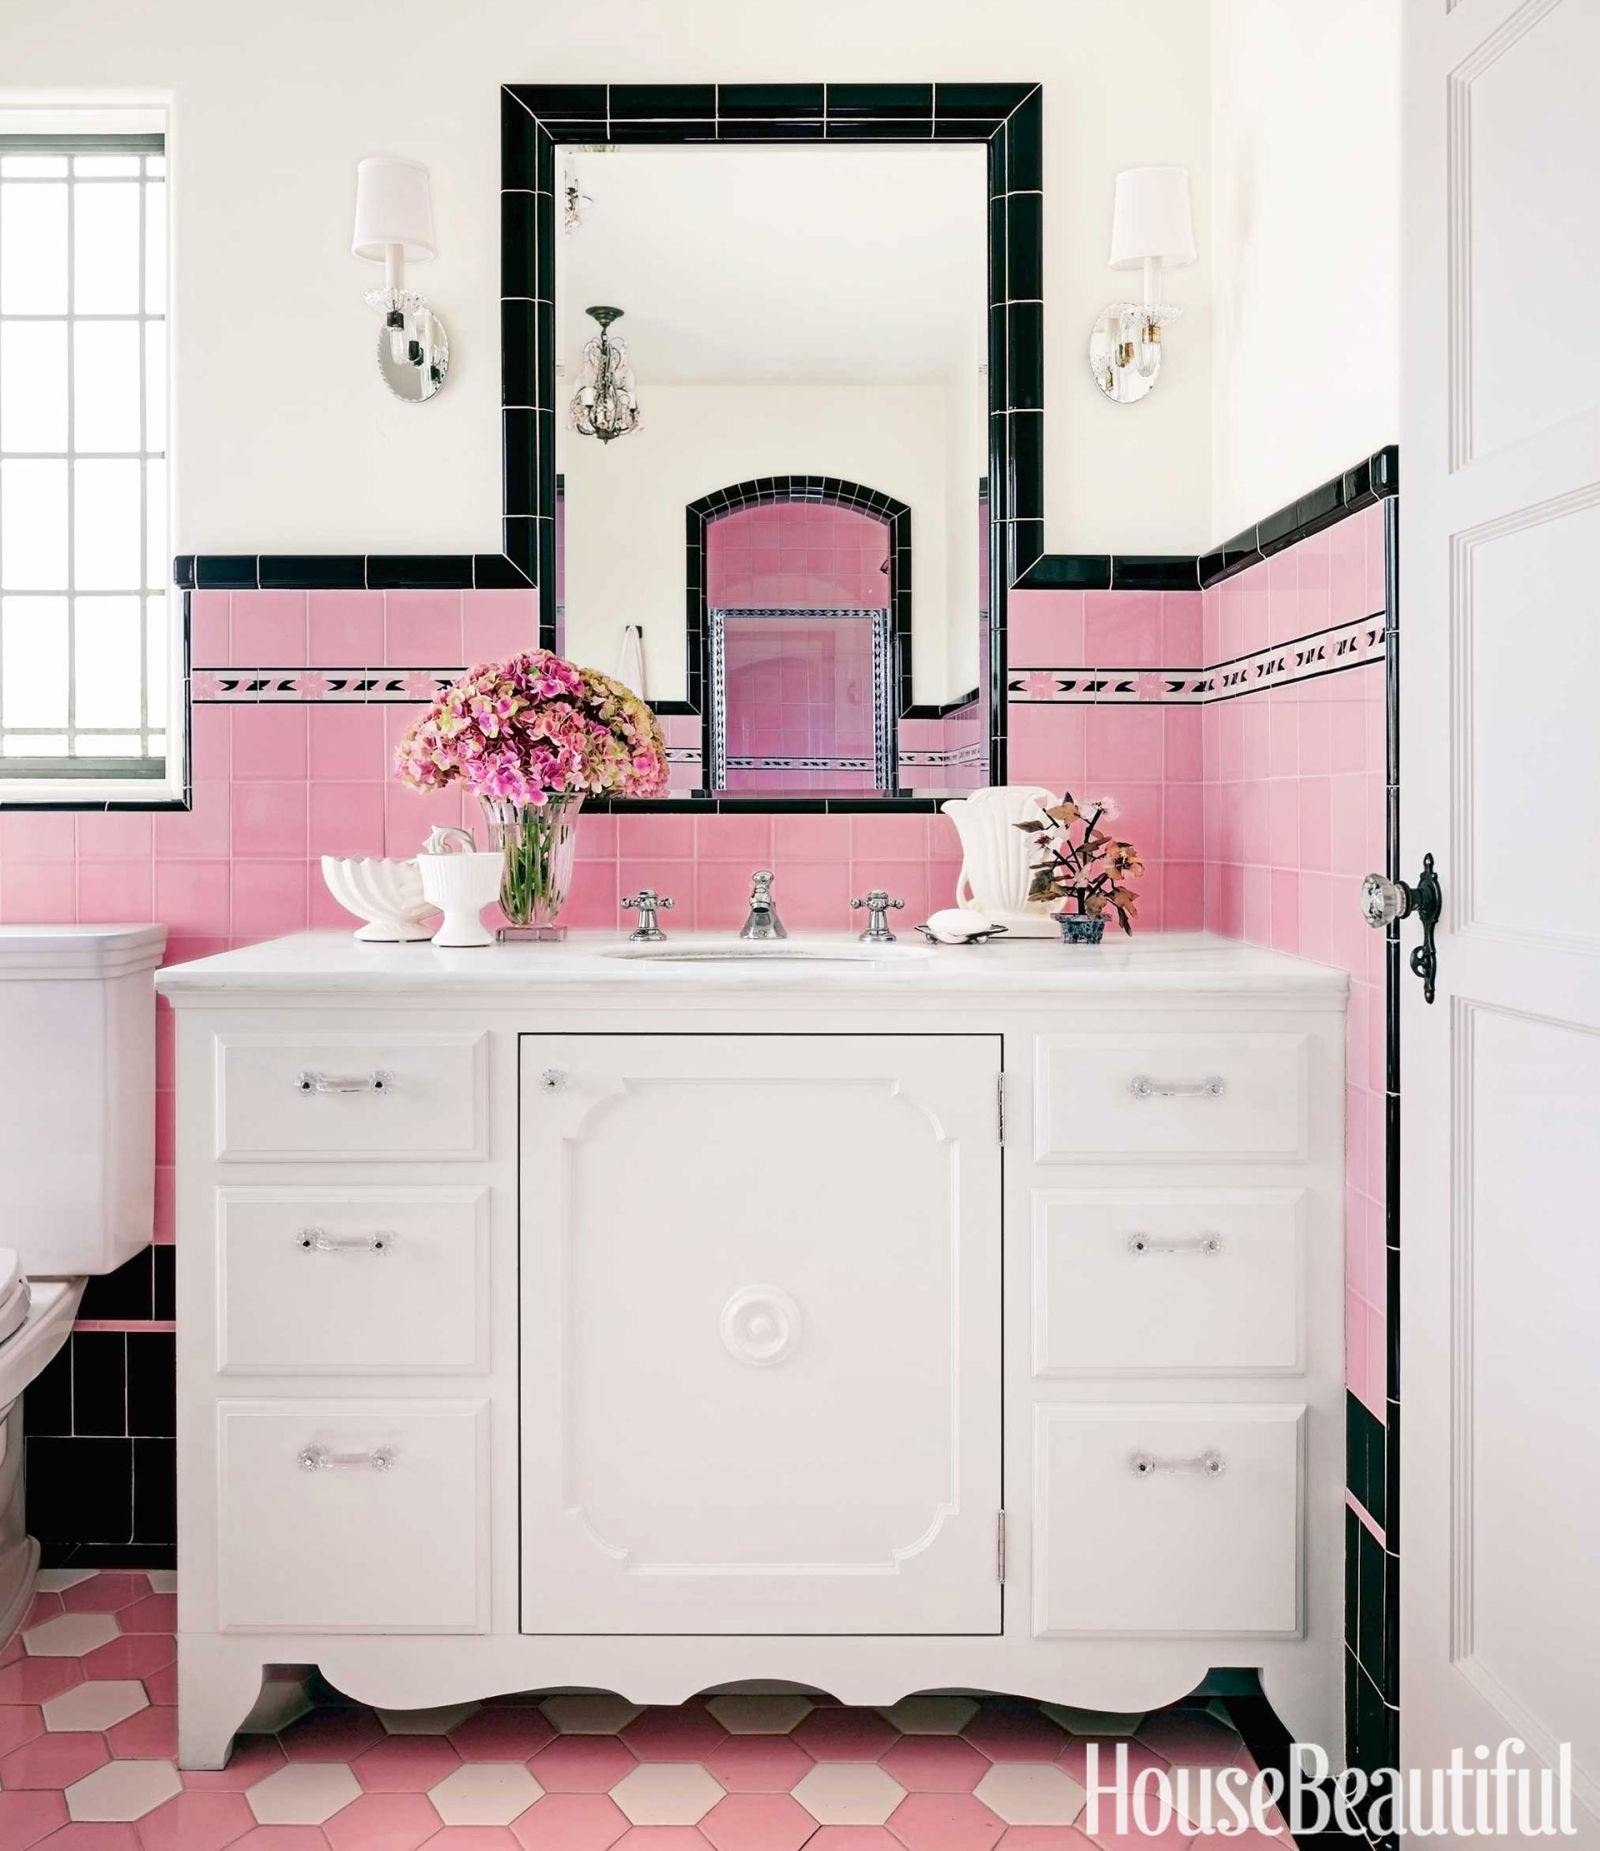 Merveilleux View In Gallery Beautiful And Girly Pink And Black Bathroom